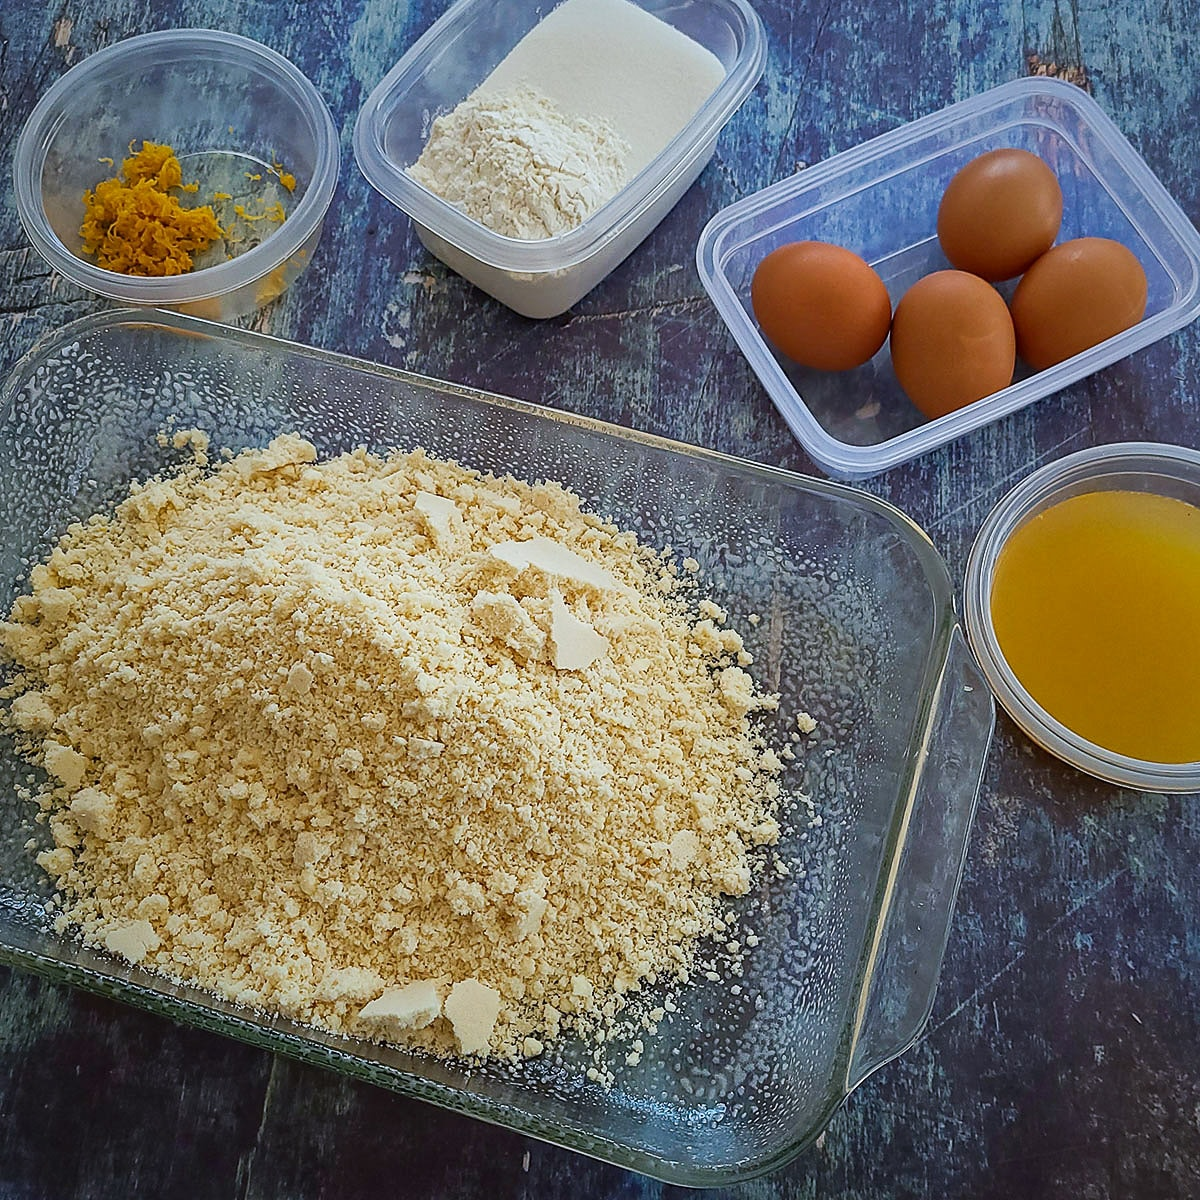 ingredients laid out for lemon bar cookies